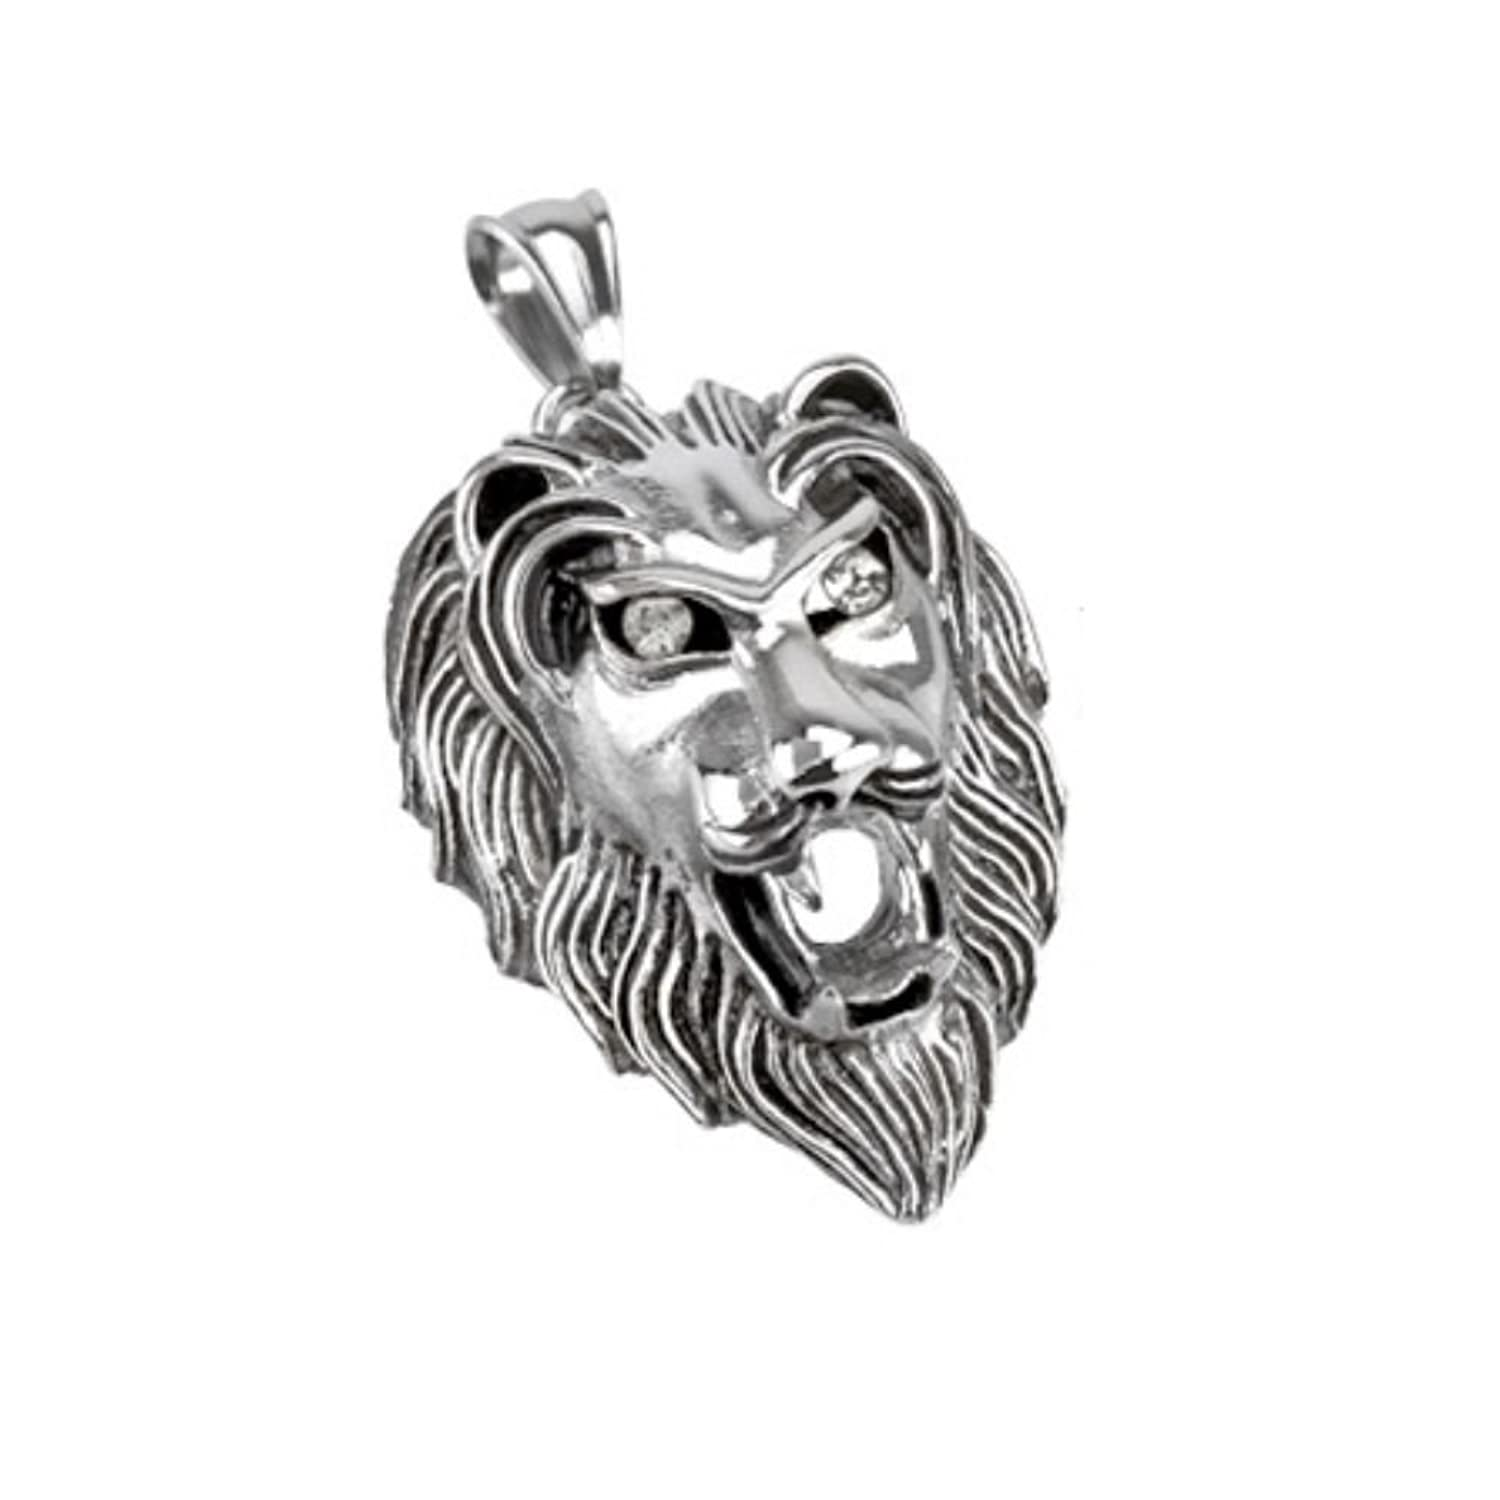 pendant mens men piece stainless necklace gold plated rope store head quot online chain product s cool steel with lion free